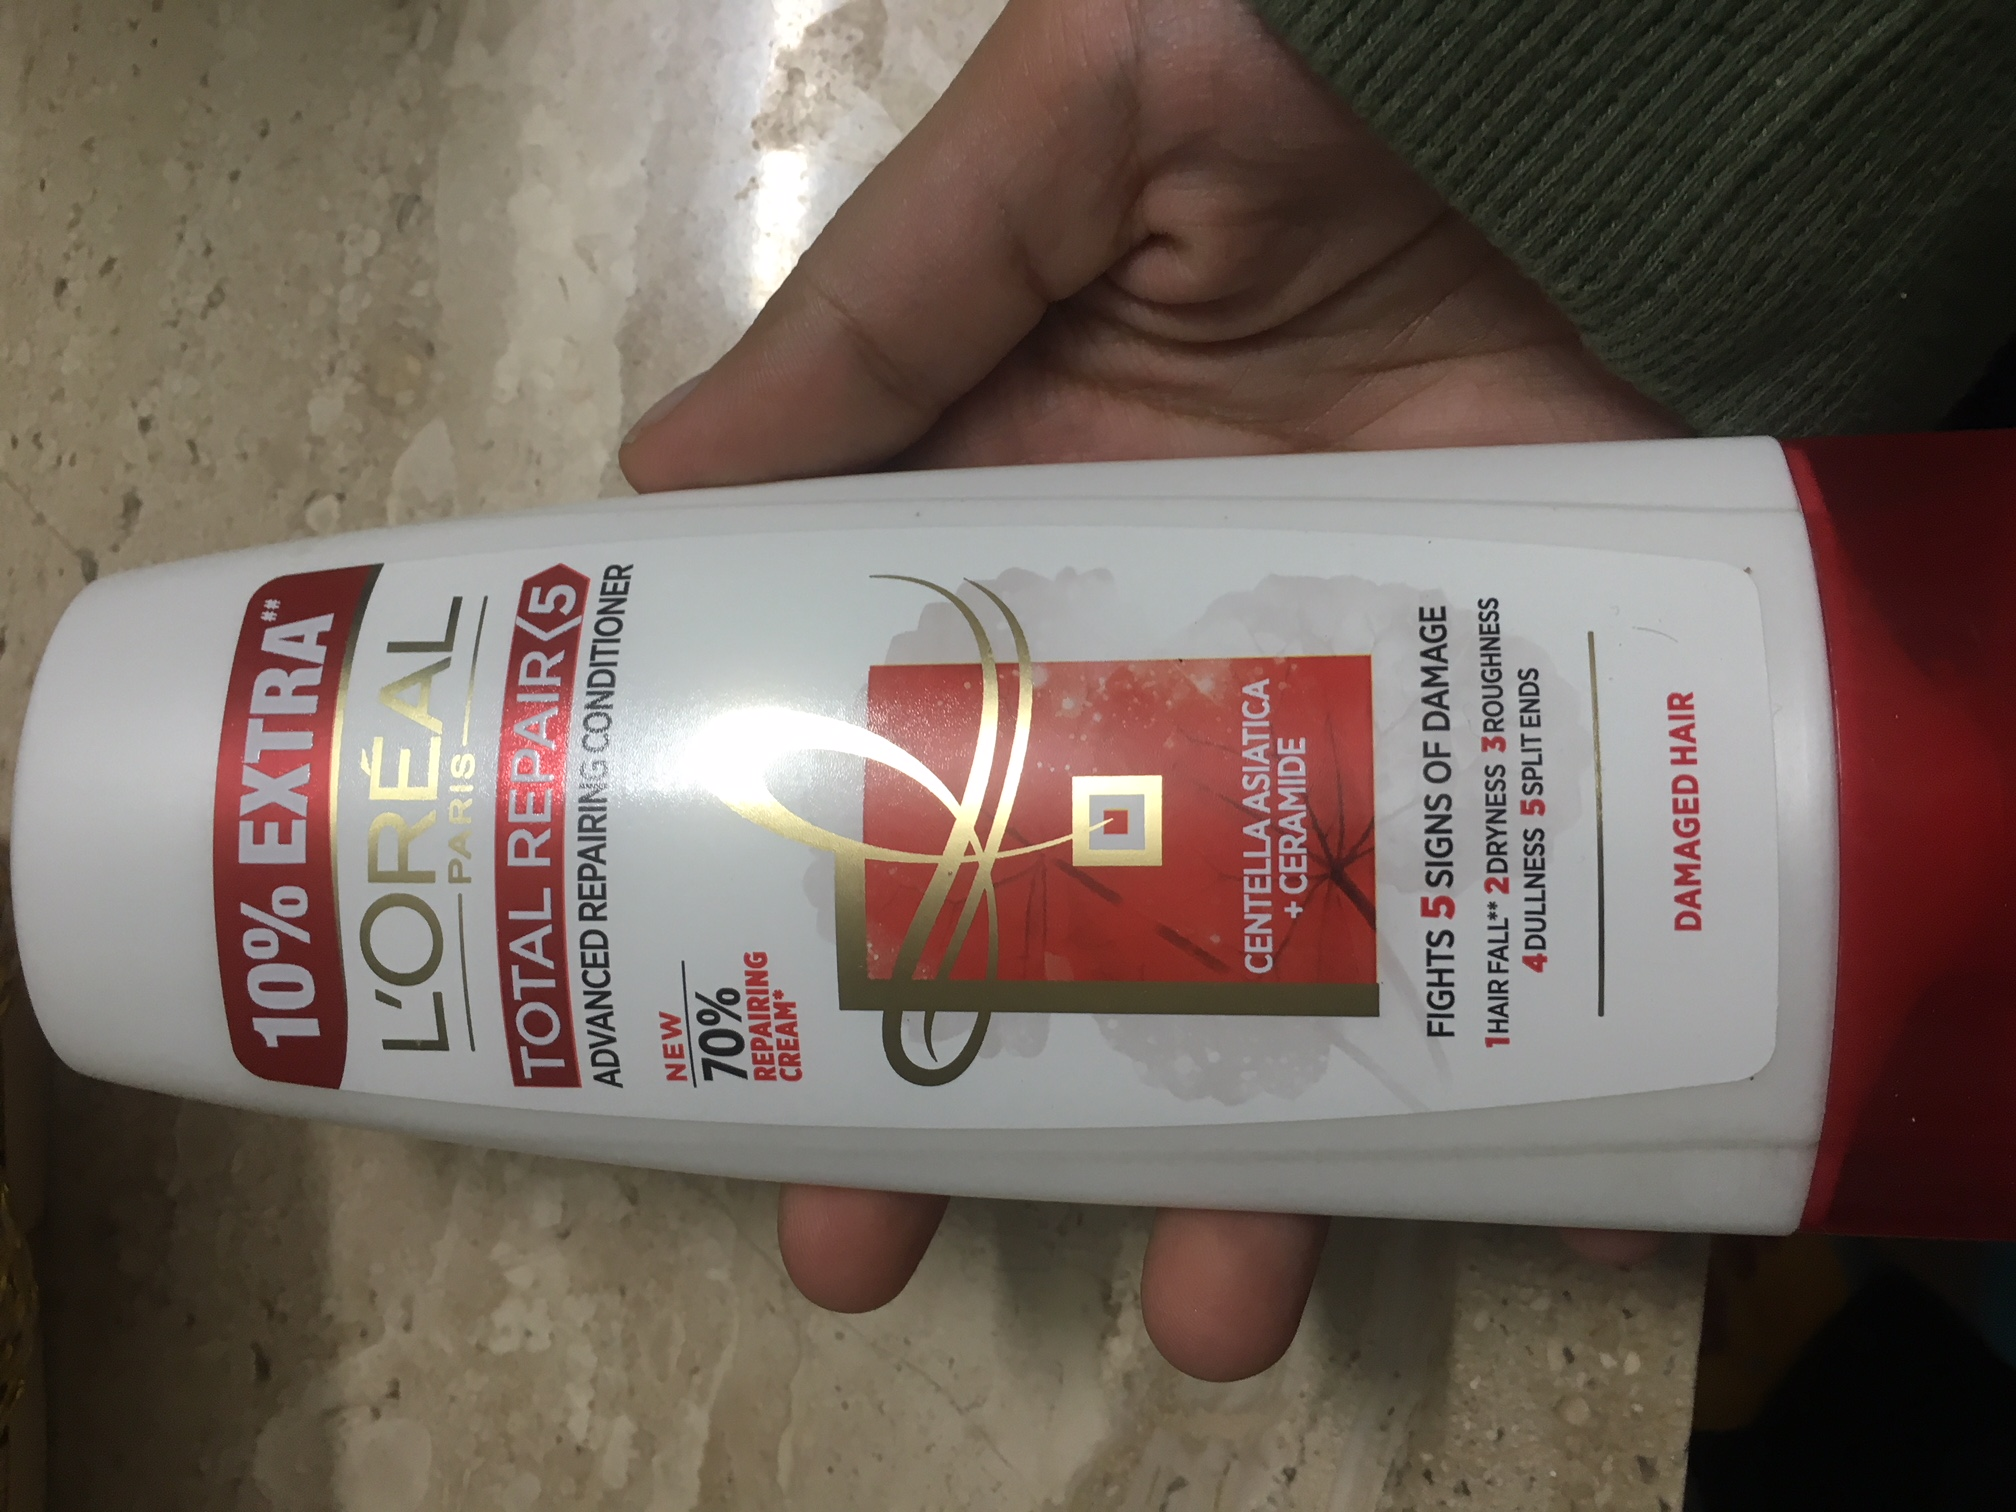 L'Oreal Paris Total Repair 5 Conditioner-Nice conditioner-By prernakapur